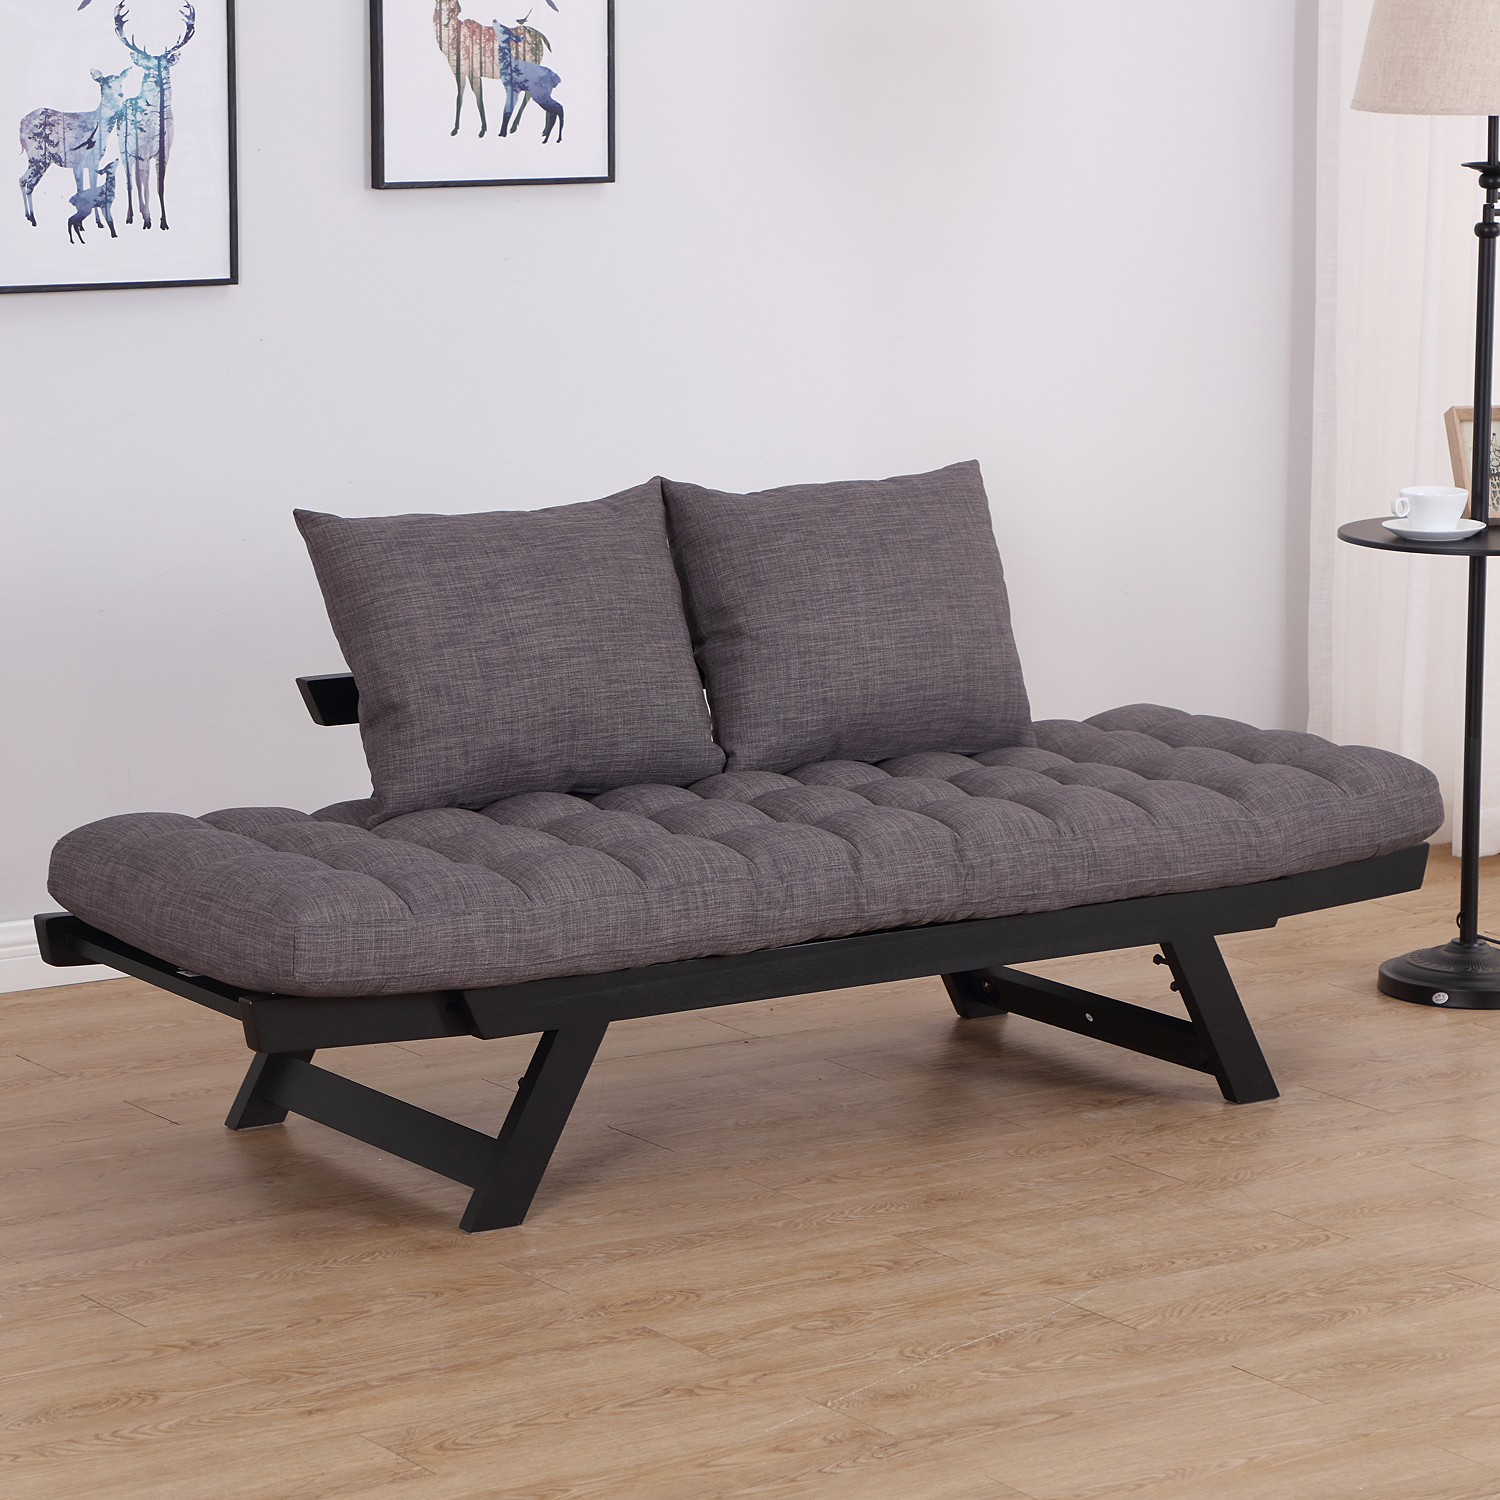 Convertible-Sofa-Bed-Sleeper-Couch-Chaise-Lounge-Chair-Adjustable-Padded-Pillow thumbnail 24